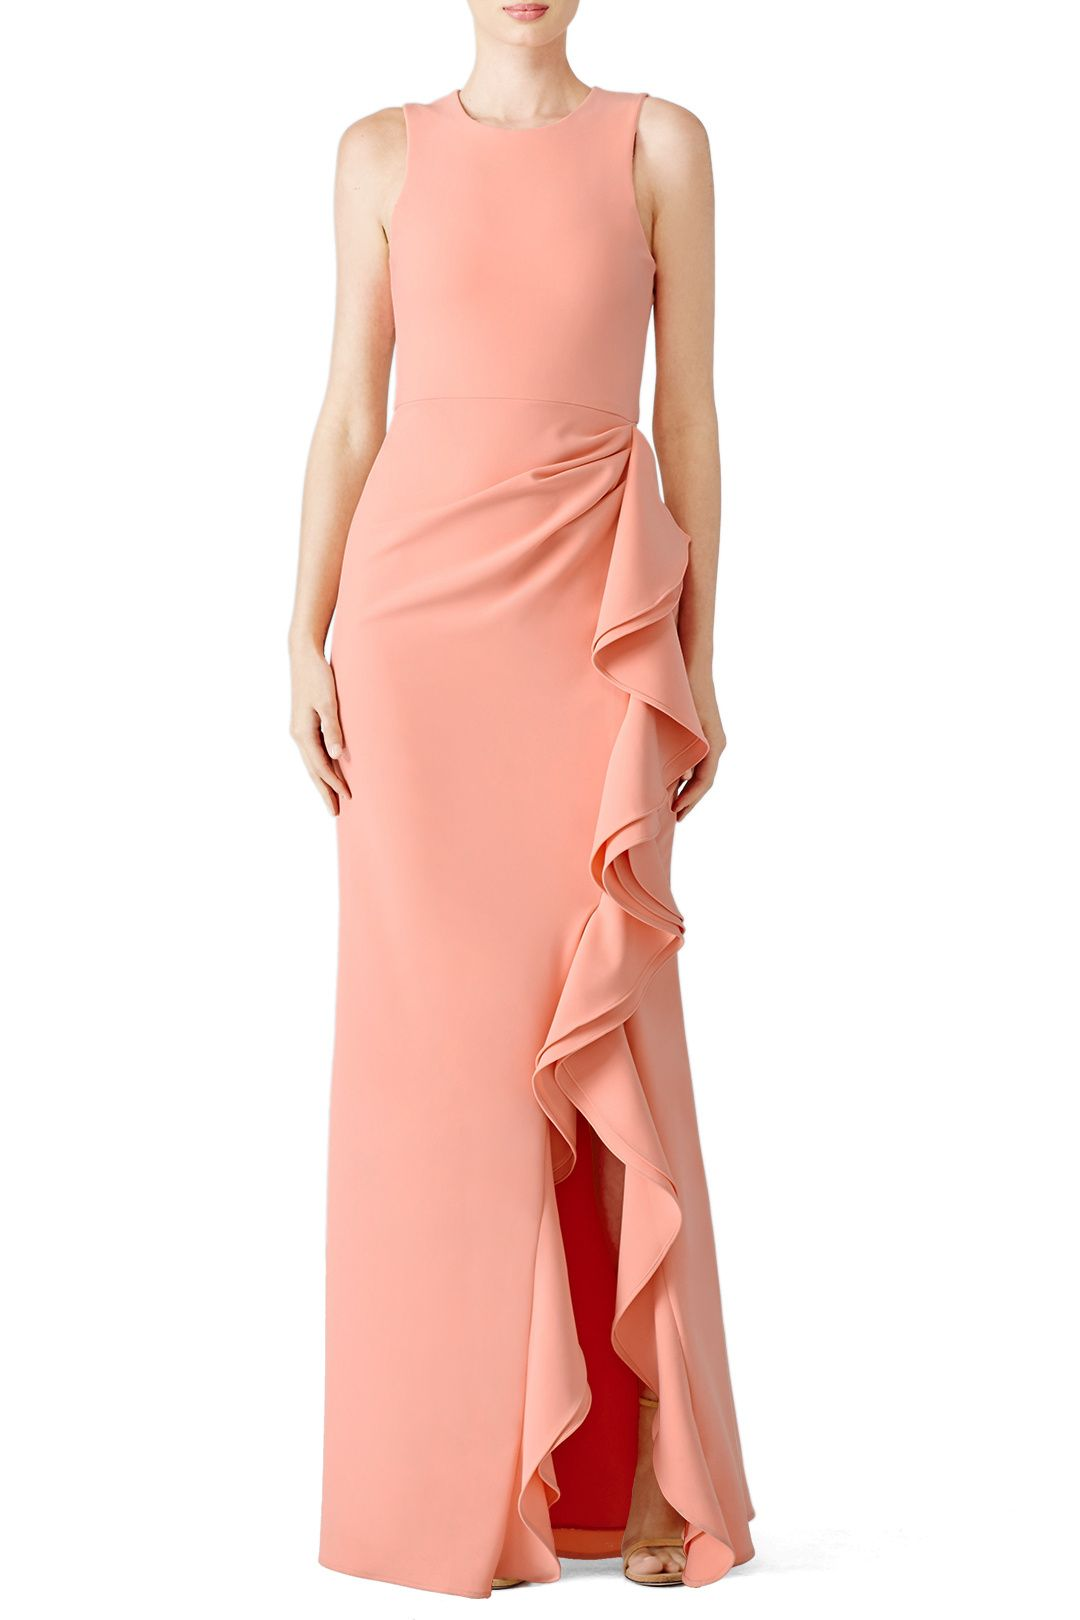 Rent Pink Madeline Gown by Parker for $40 - $70 only at Rent the ...